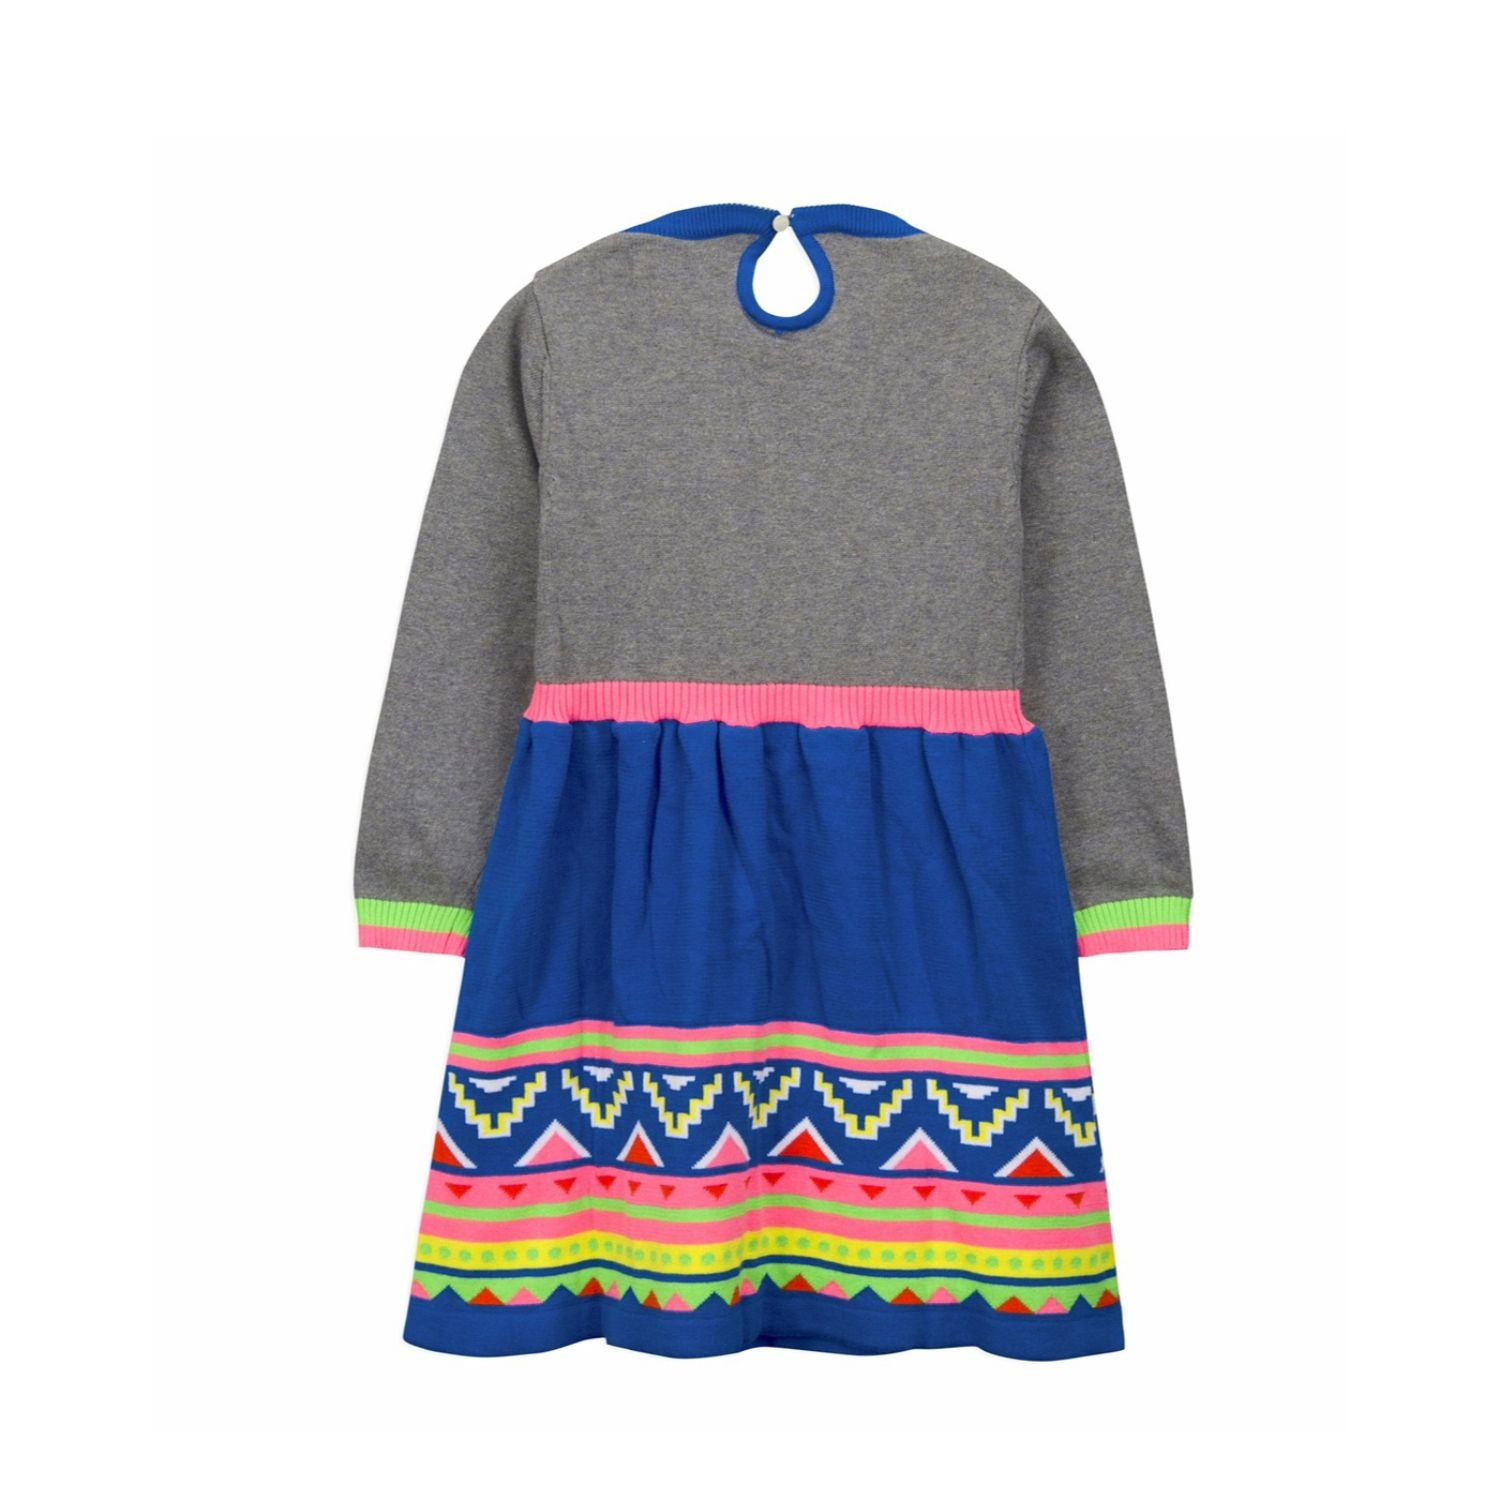 Intarsia Knitted Dress for Girls